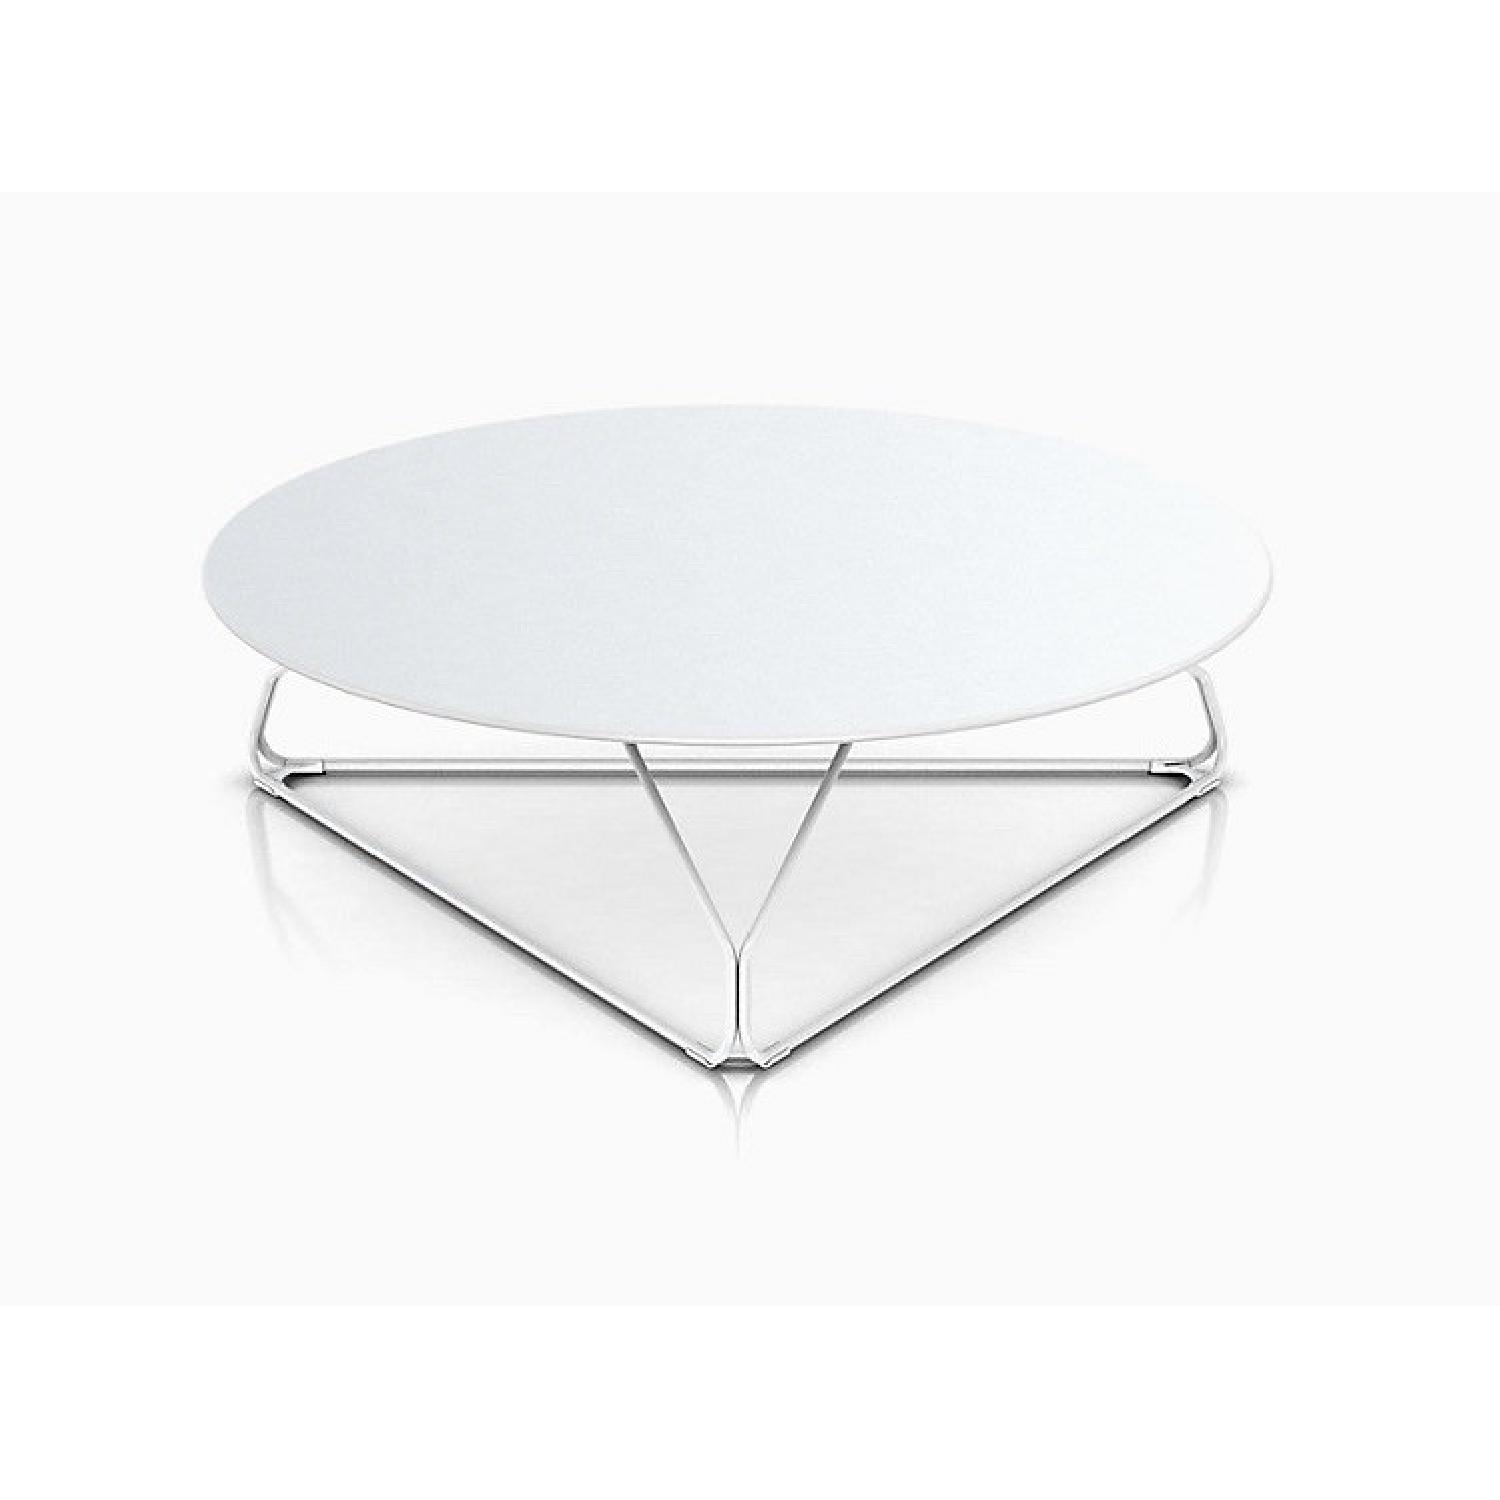 Herman Miller Polygon Wire Triangle Table in White